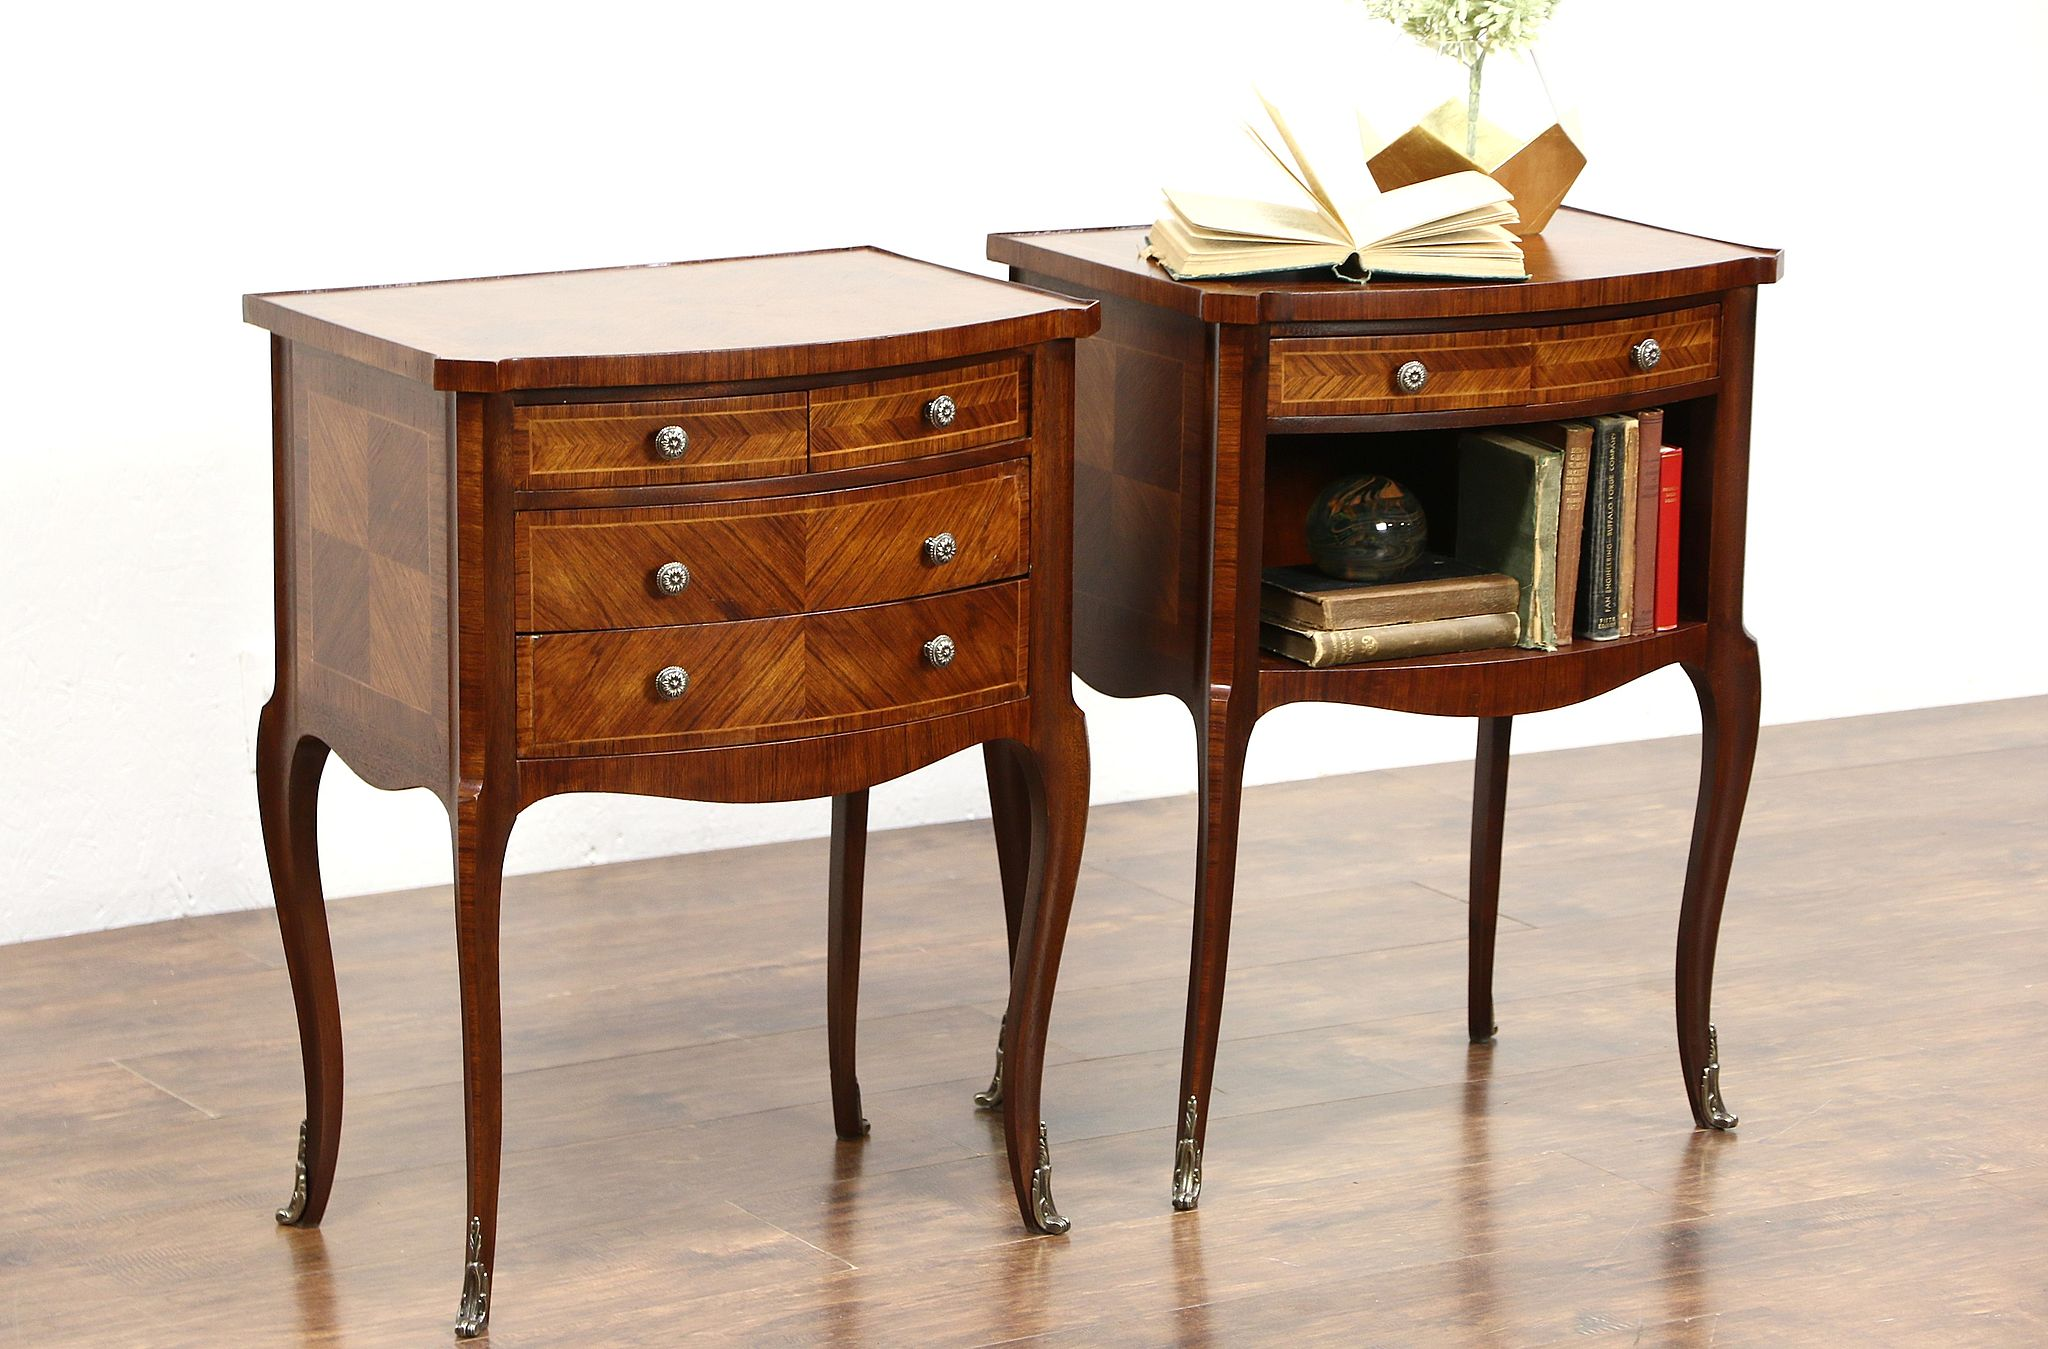 Delightful Vintage Nightstands Part - 1: Pair Of French Rosewood Vintage Nightstands Or End Tables ...